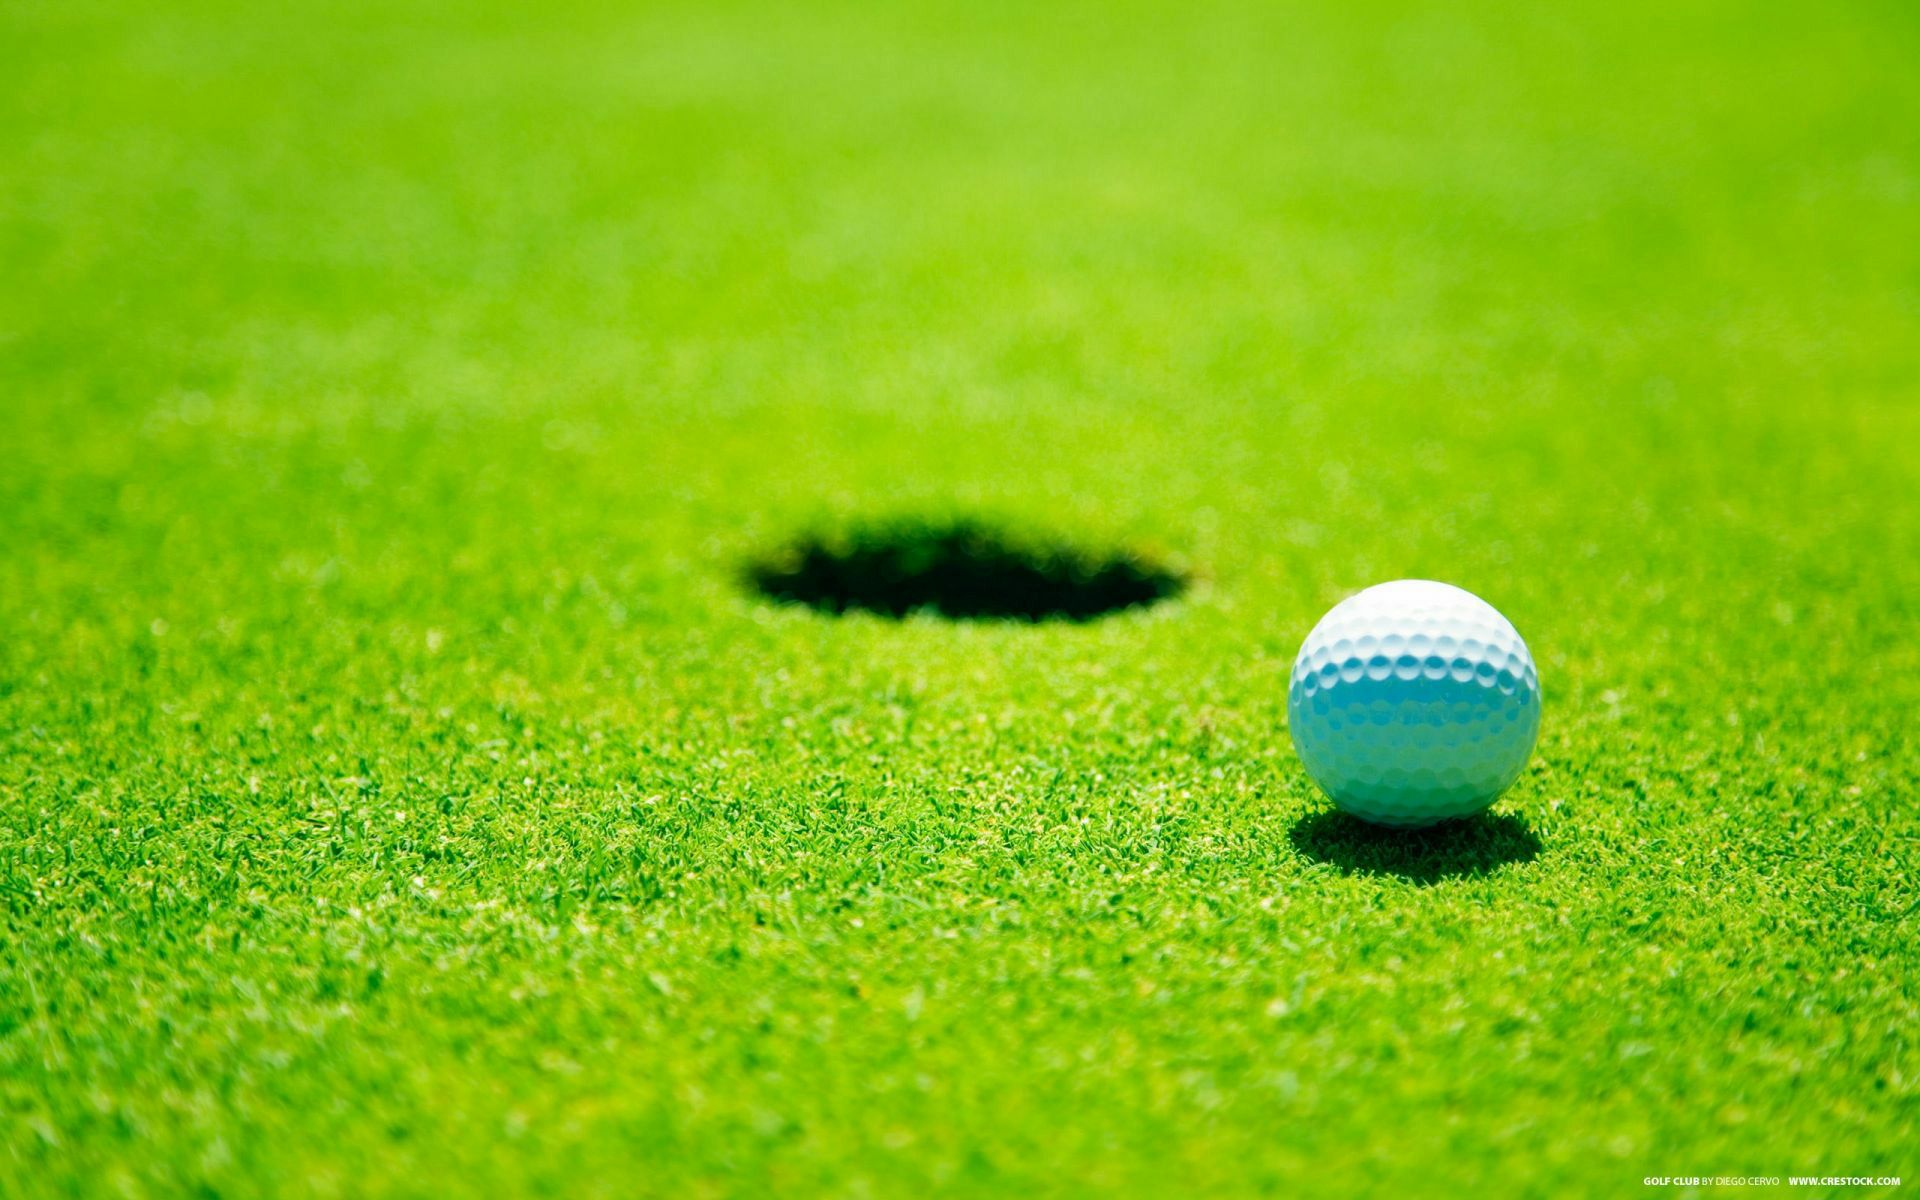 Pin By Fix My Computer Dude On Green Color Wallpapers For Desktops That Can Protect Your Eyes Golf Pictures Golf Ball Golf Courses